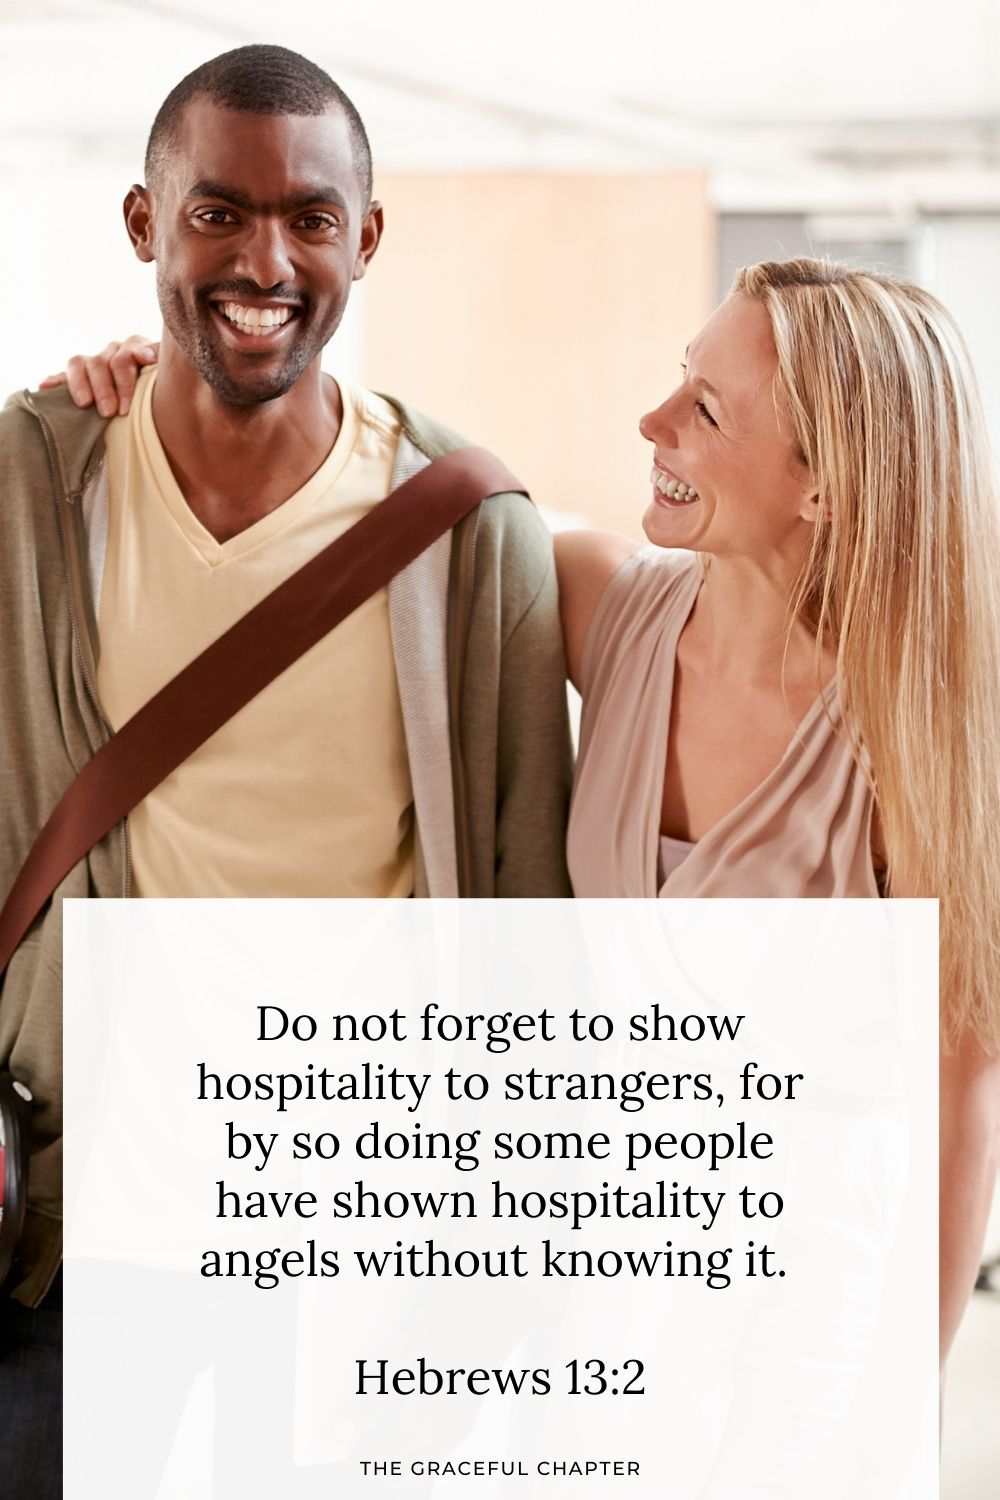 Do not forget to show hospitality to strangers, for by so doing some people have shown hospitality to angels without knowing it. Hebrews 13:2